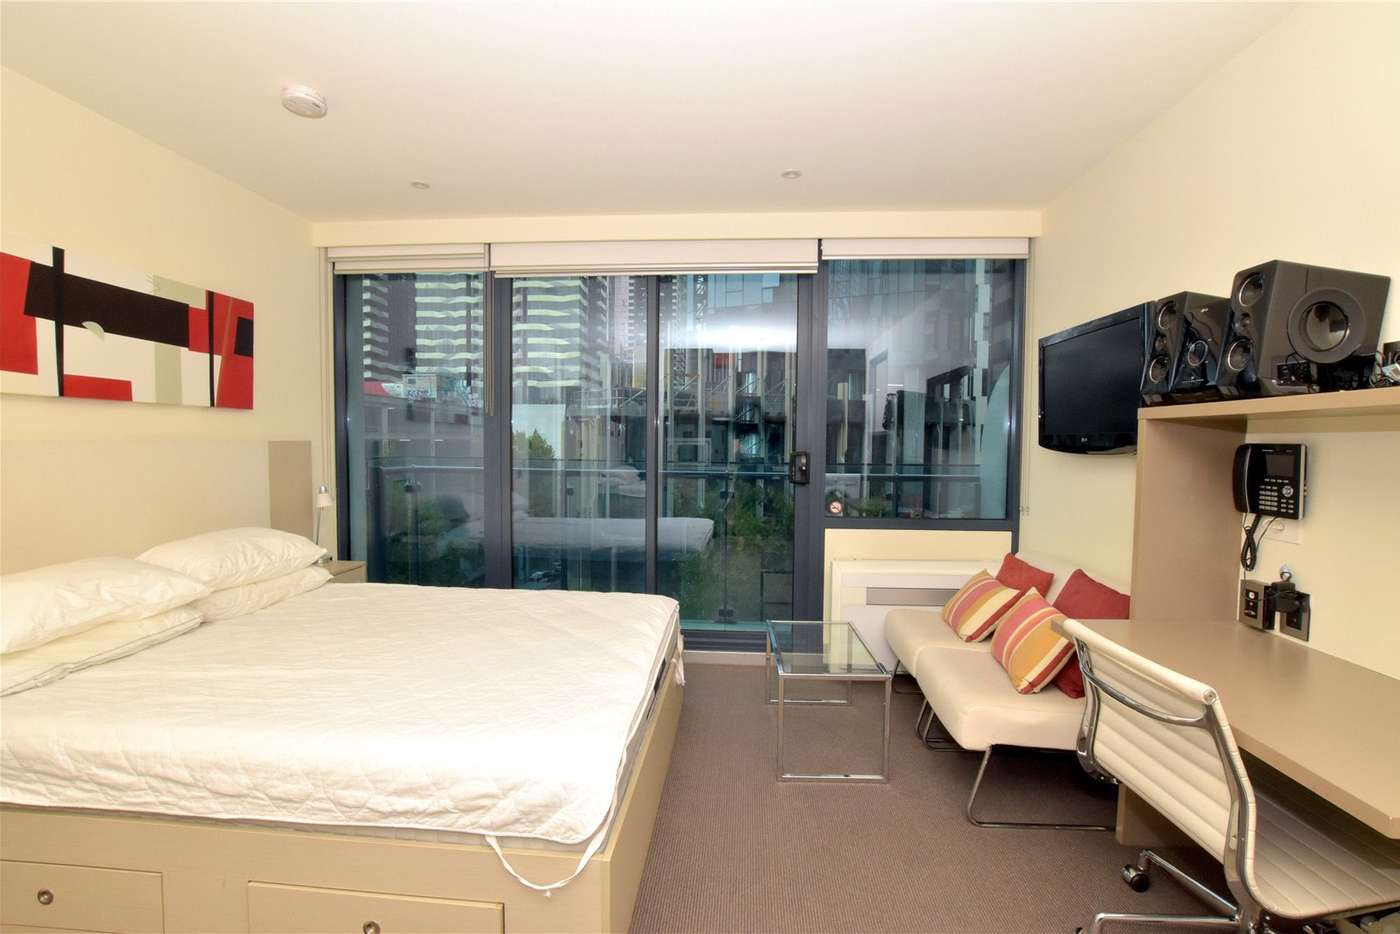 Main view of Homely studio listing, 507/181 ABeckett Street, Melbourne VIC 3000